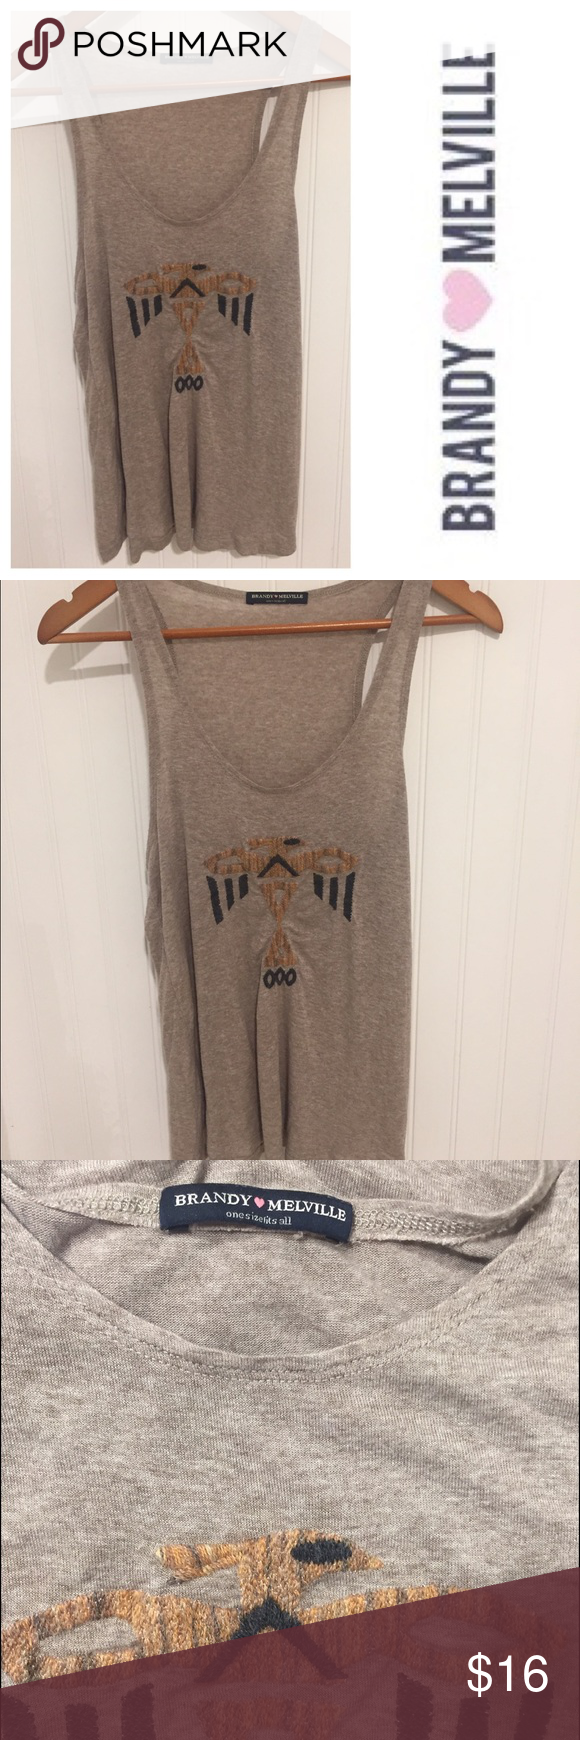 Brandy Melville embroidered navajo tank top One size fits most. Worn once. In excellent condition. See my closet for more great designer items. 15% off a bundle of 3 or more listings. Sorry, no trades! Brandy Melville Tops Tank Tops